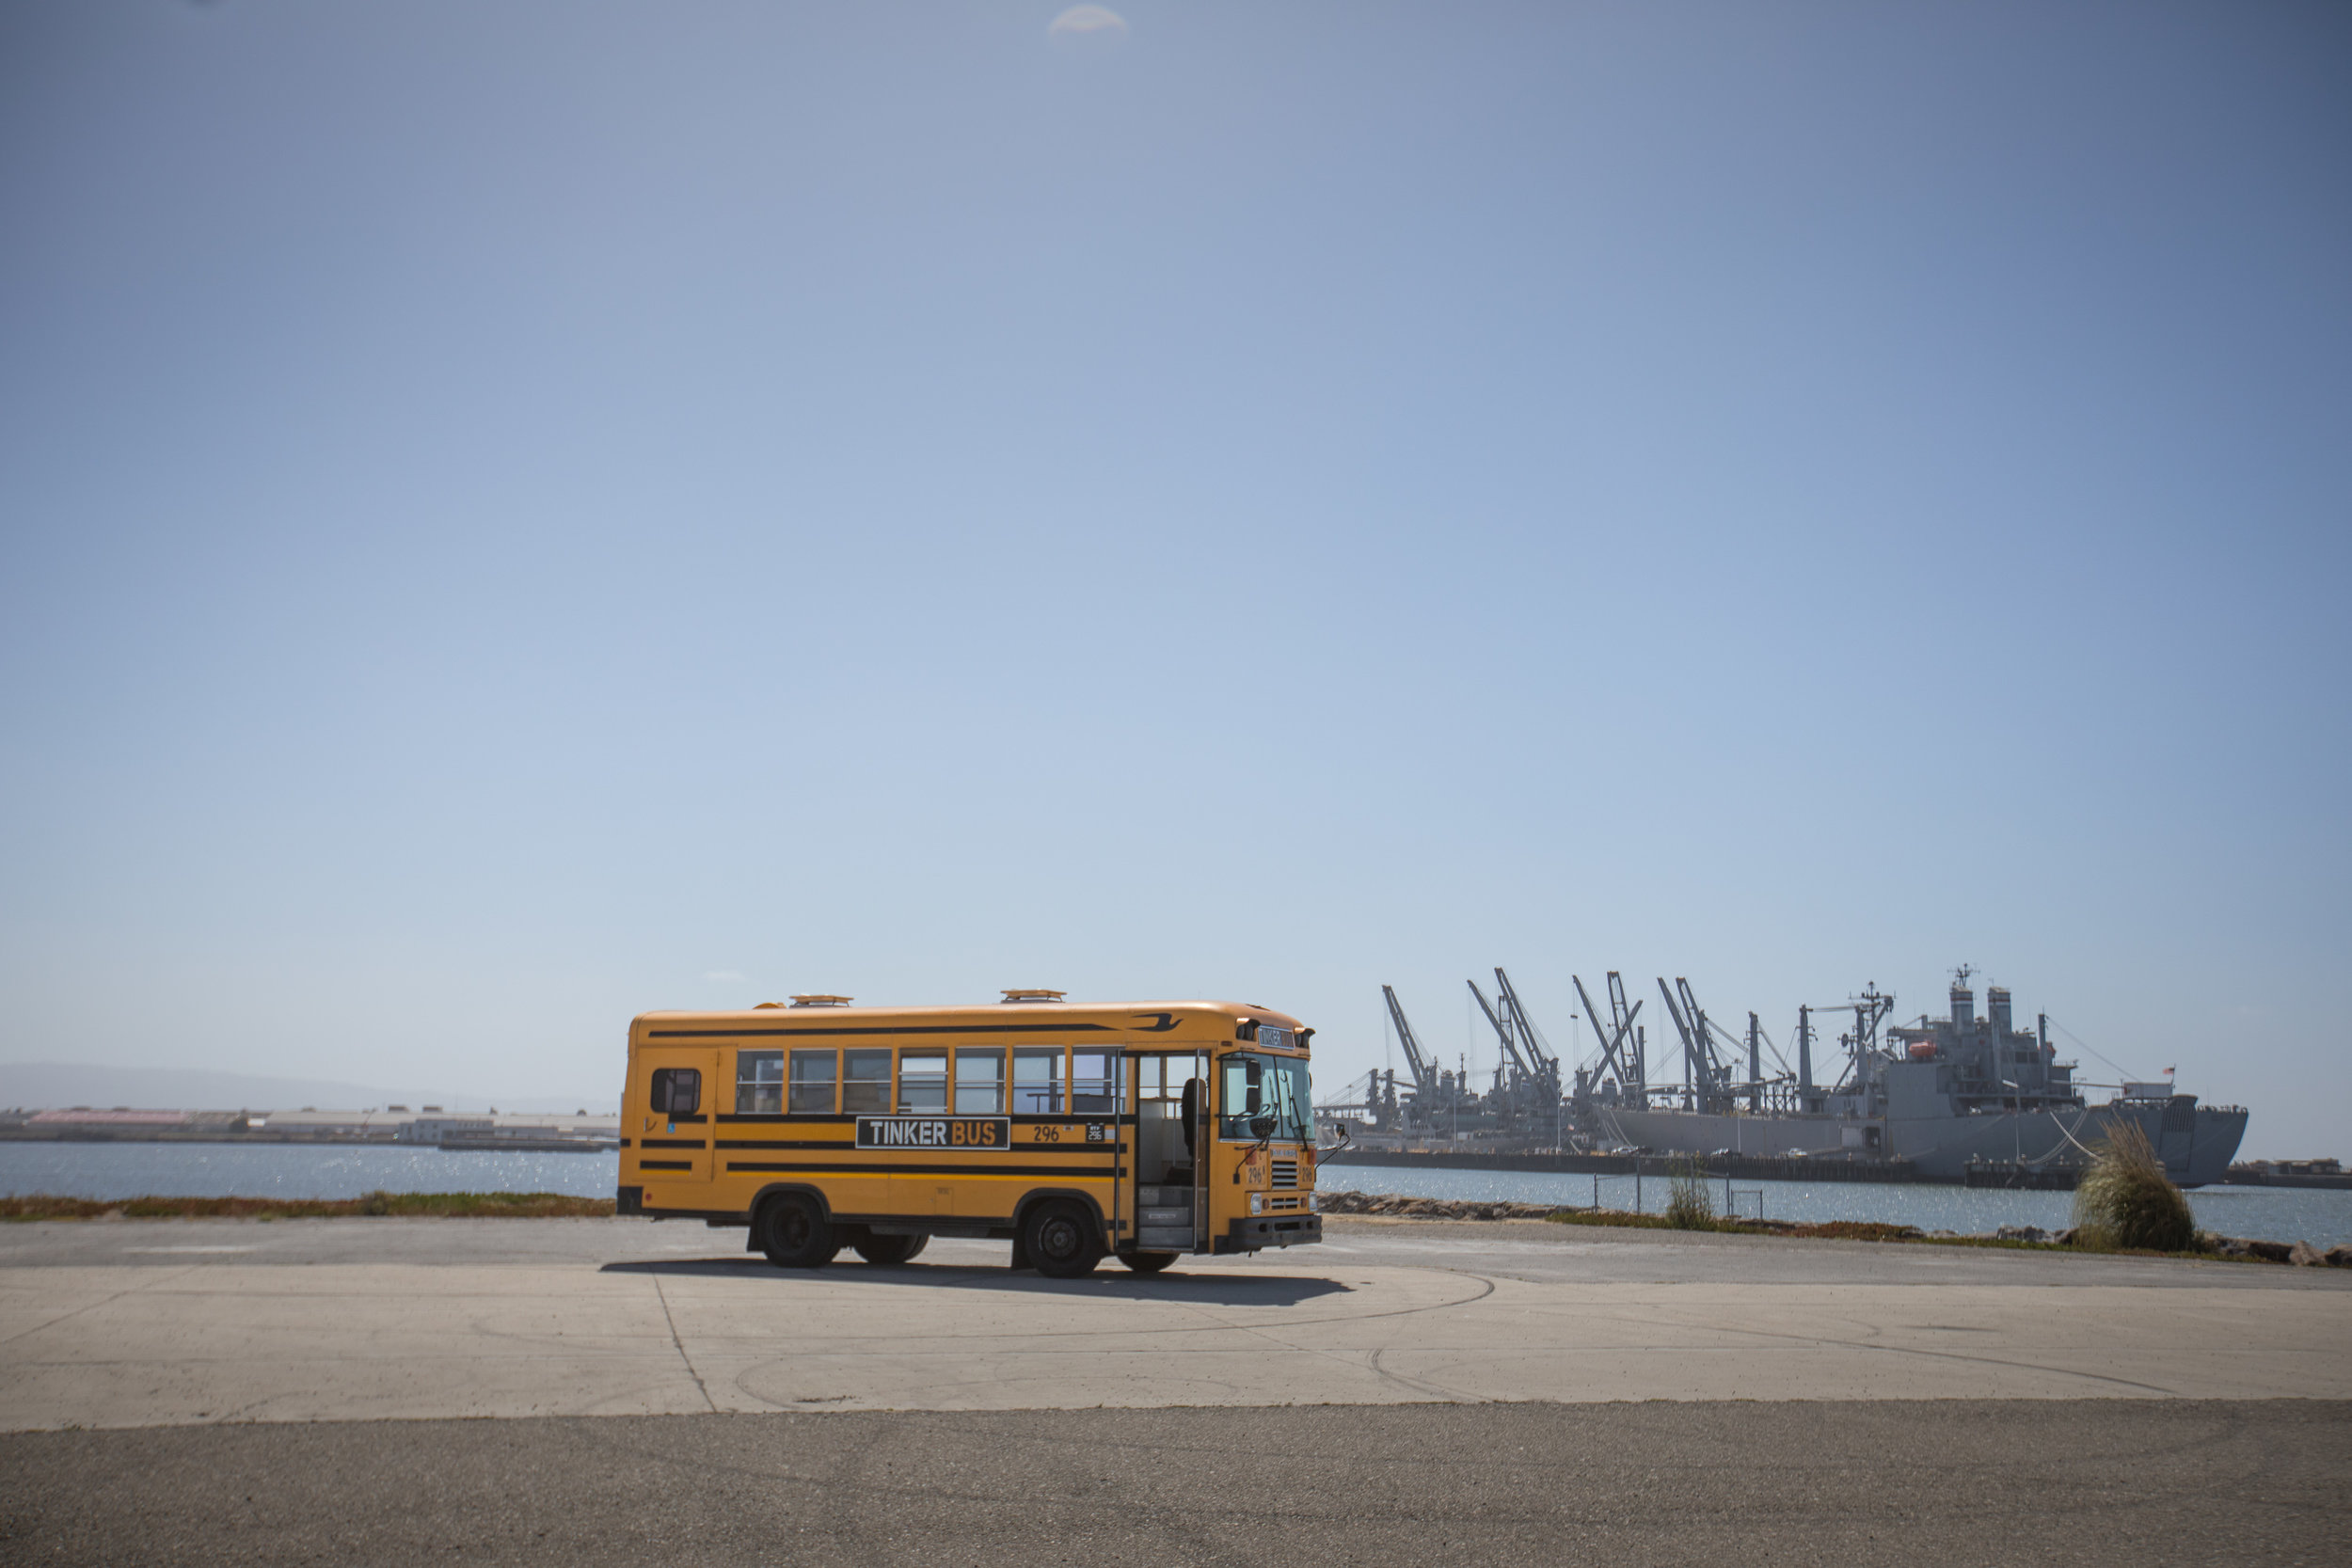 LEARN THROUGH PLAY   ALL ABOARD THE TINKER BUS